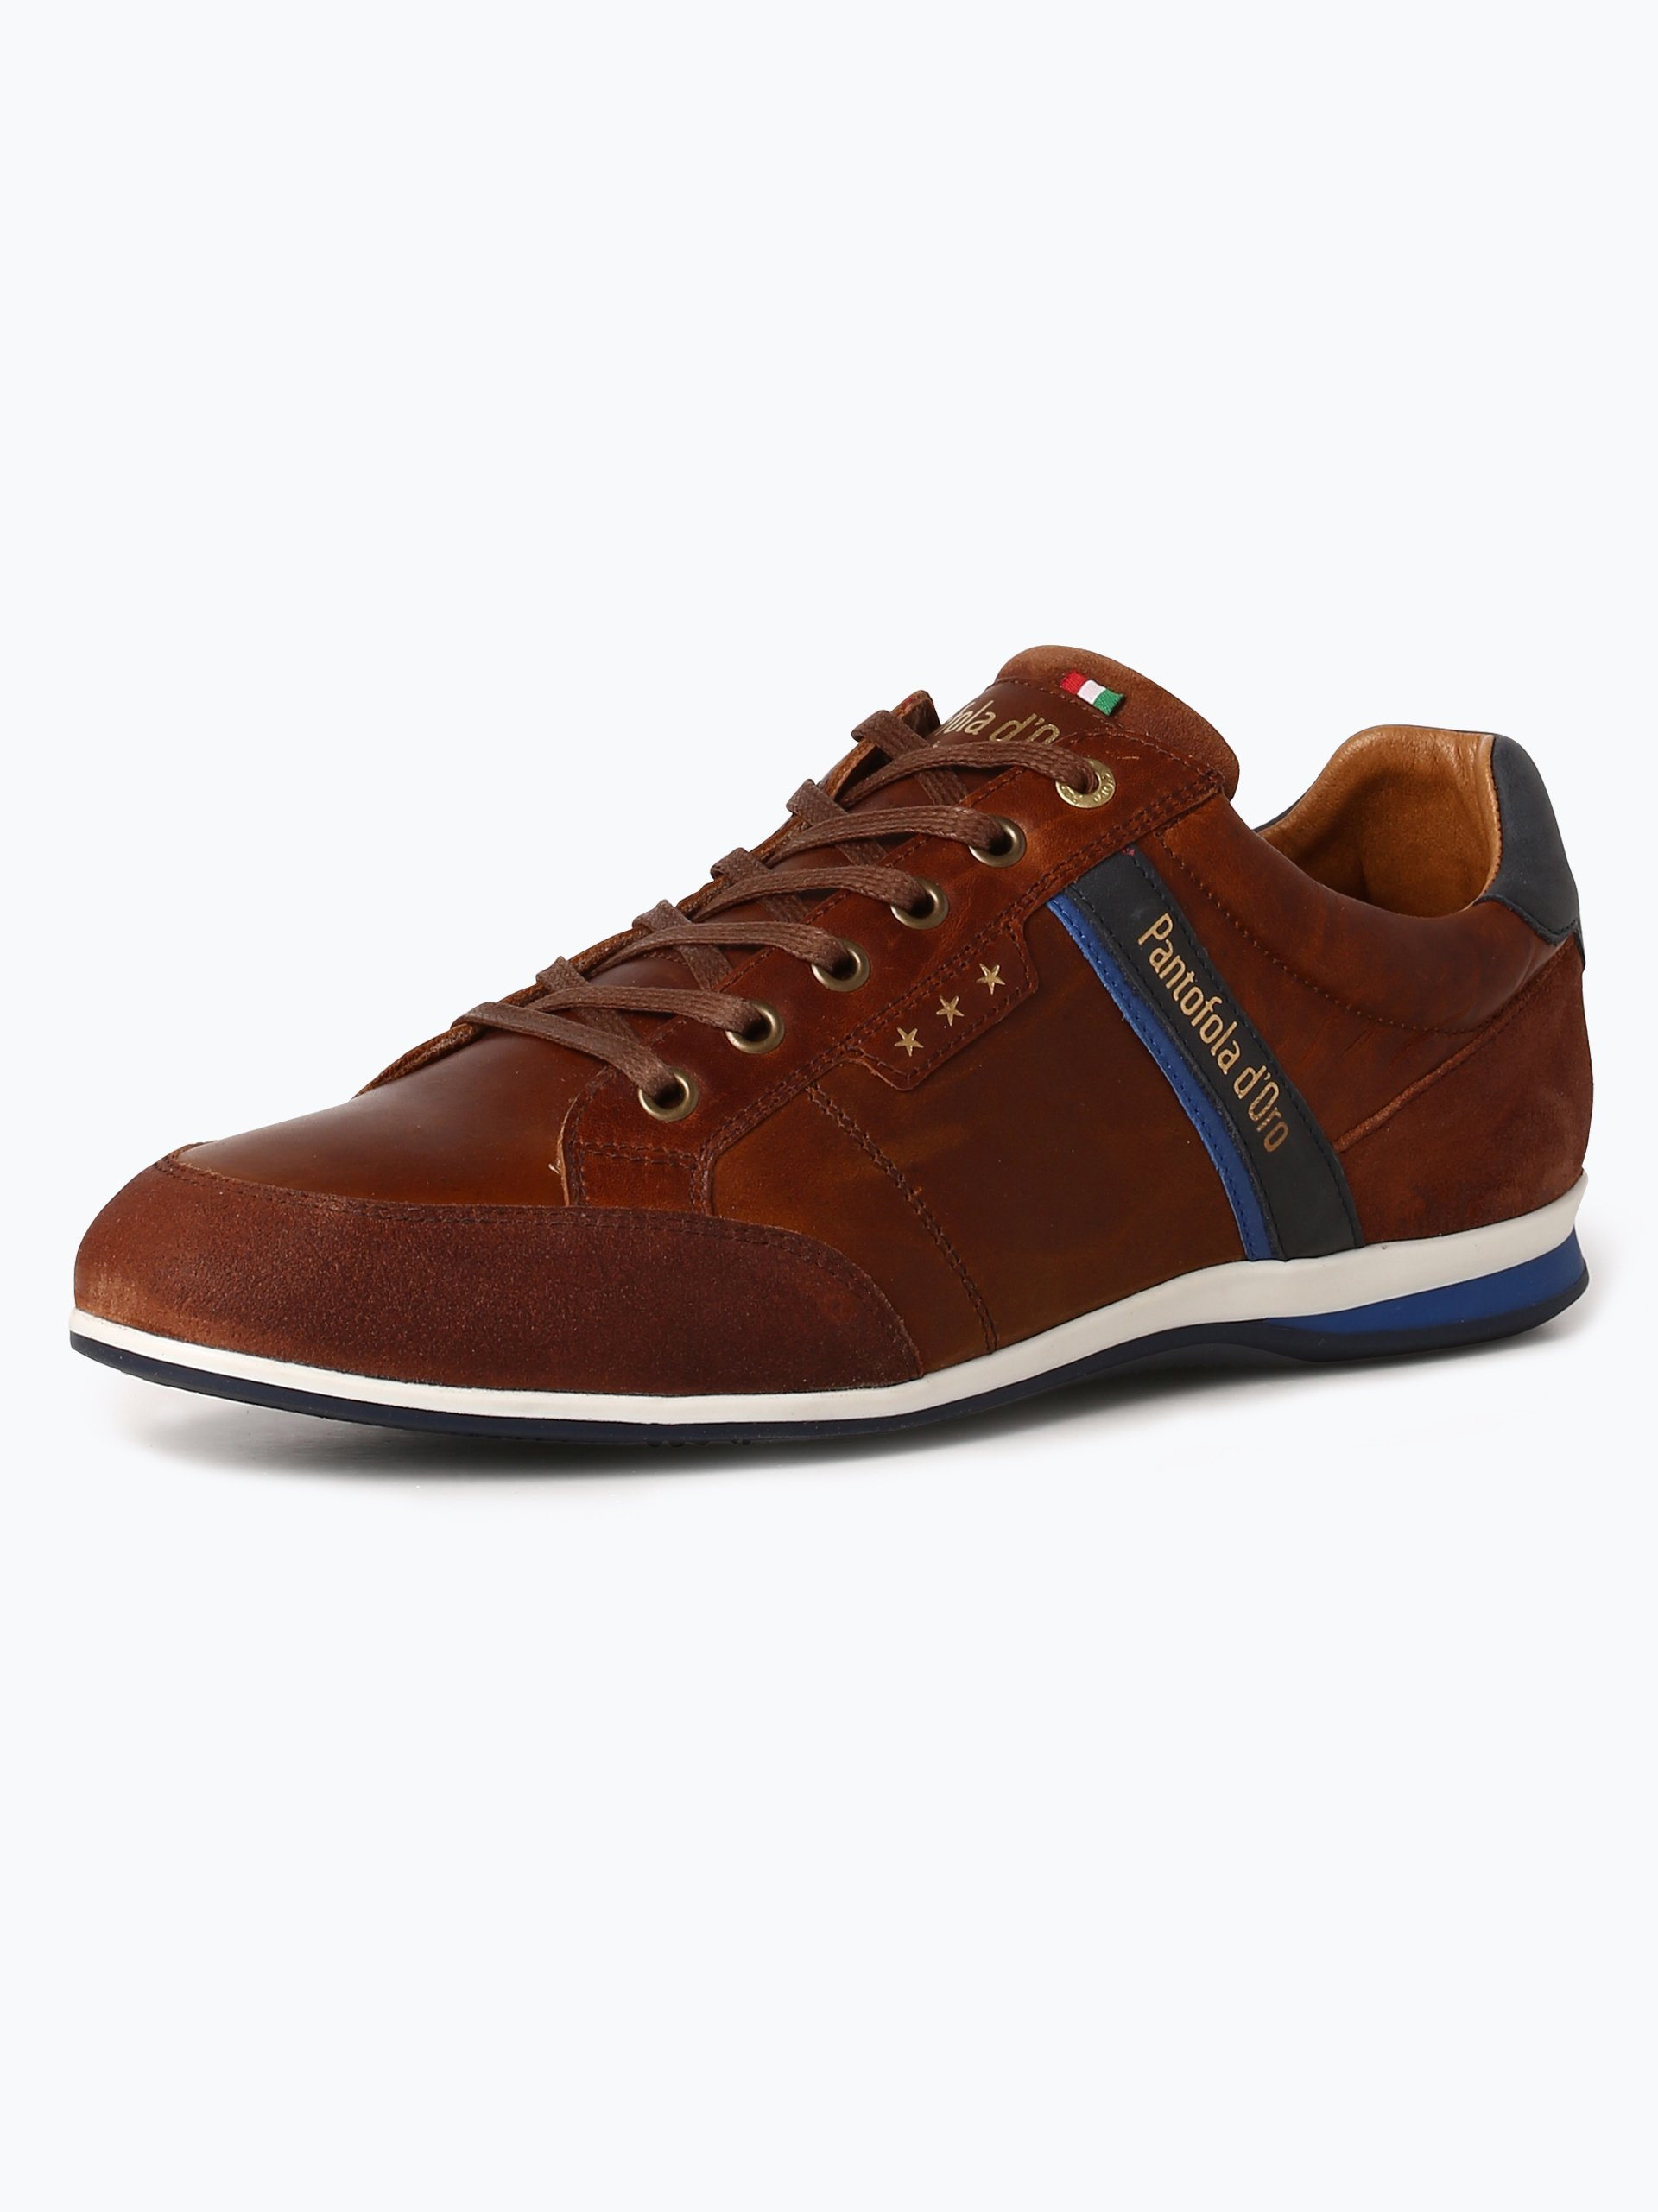 pantofola d oro herren sneaker aus leder roma cognac uni. Black Bedroom Furniture Sets. Home Design Ideas